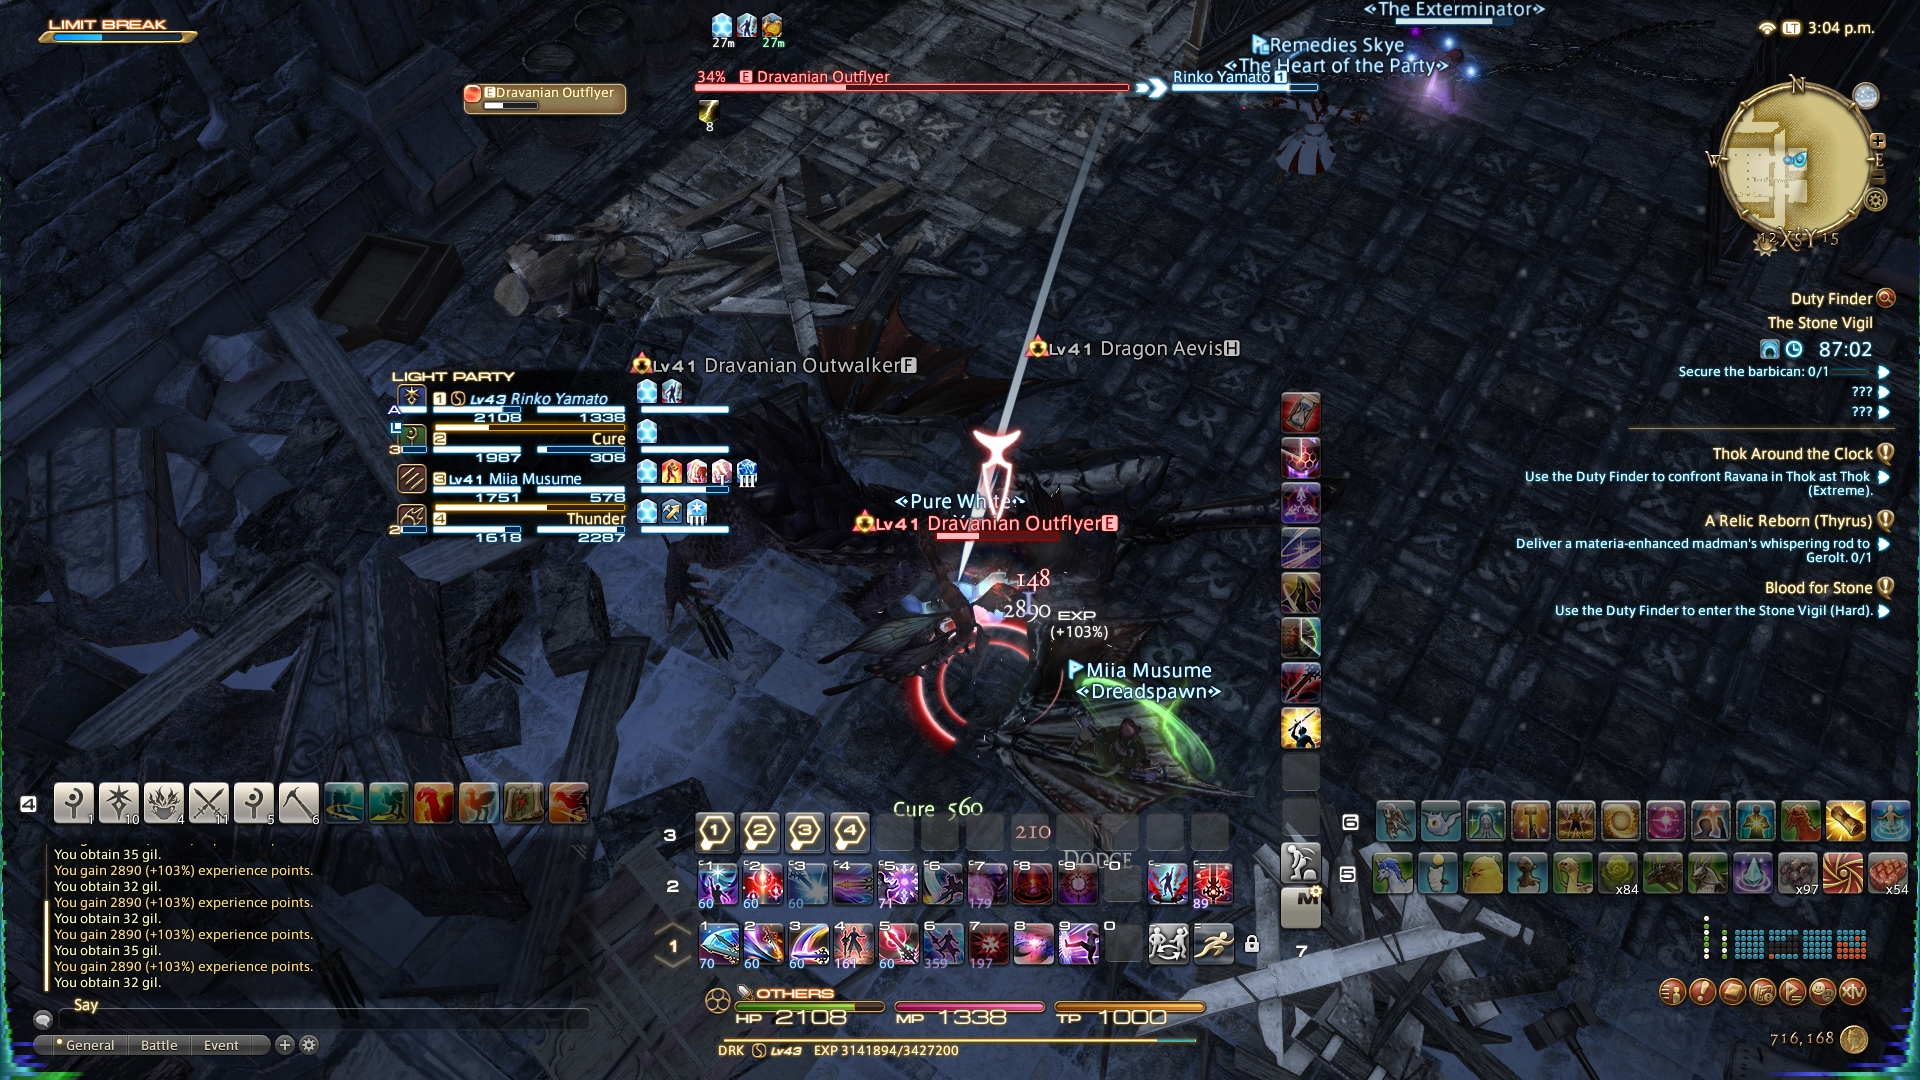 Weird Colour Things on the side of the screen? : ffxiv